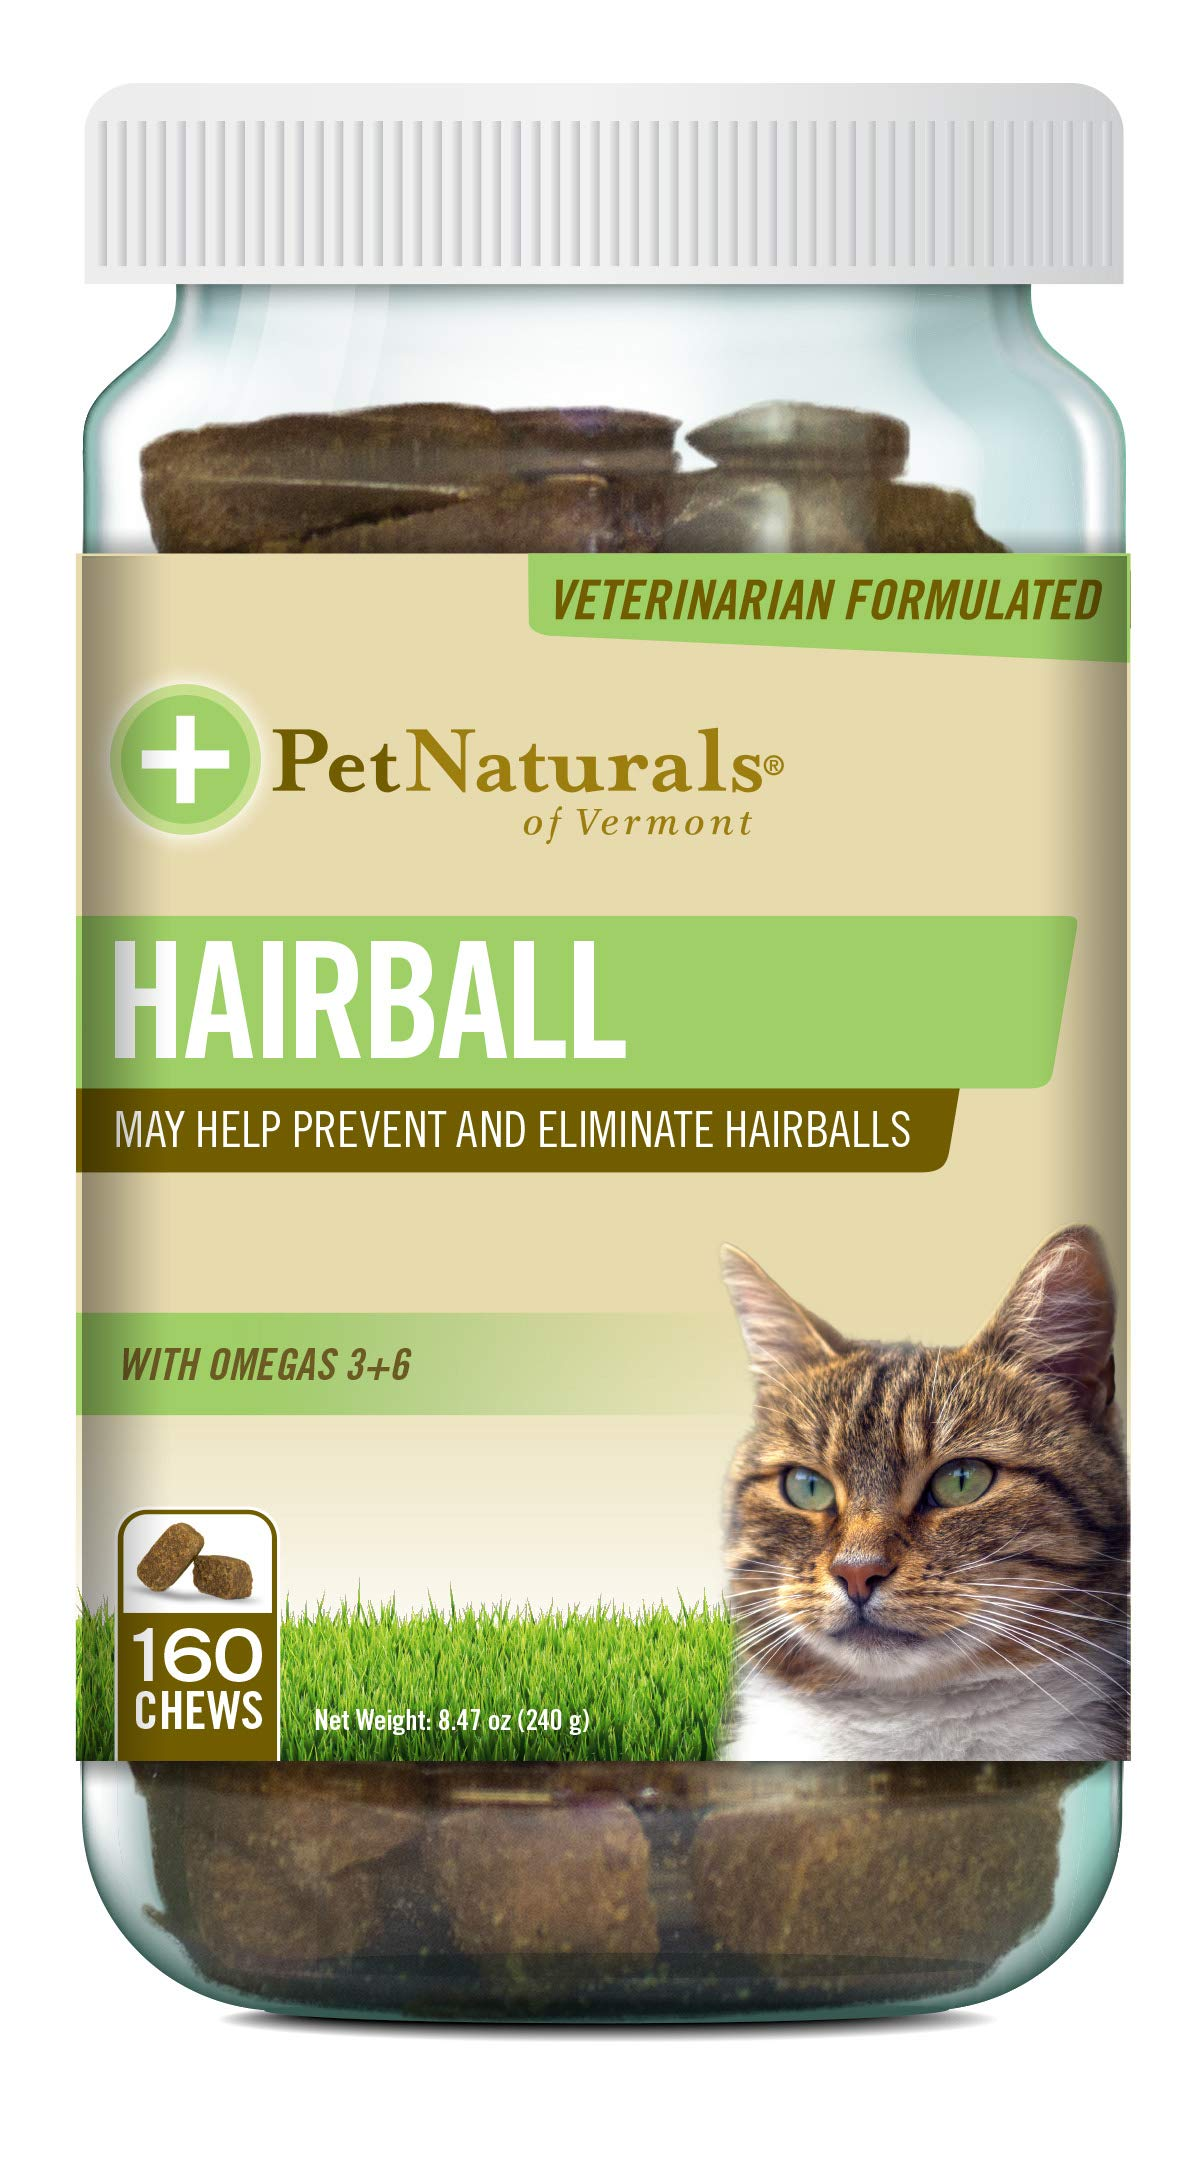 Pet Naturals - Hairball, Daily Digestive, Skin and Coat Support for Cats, 160 Bite-Sized Chews (070031G.160)